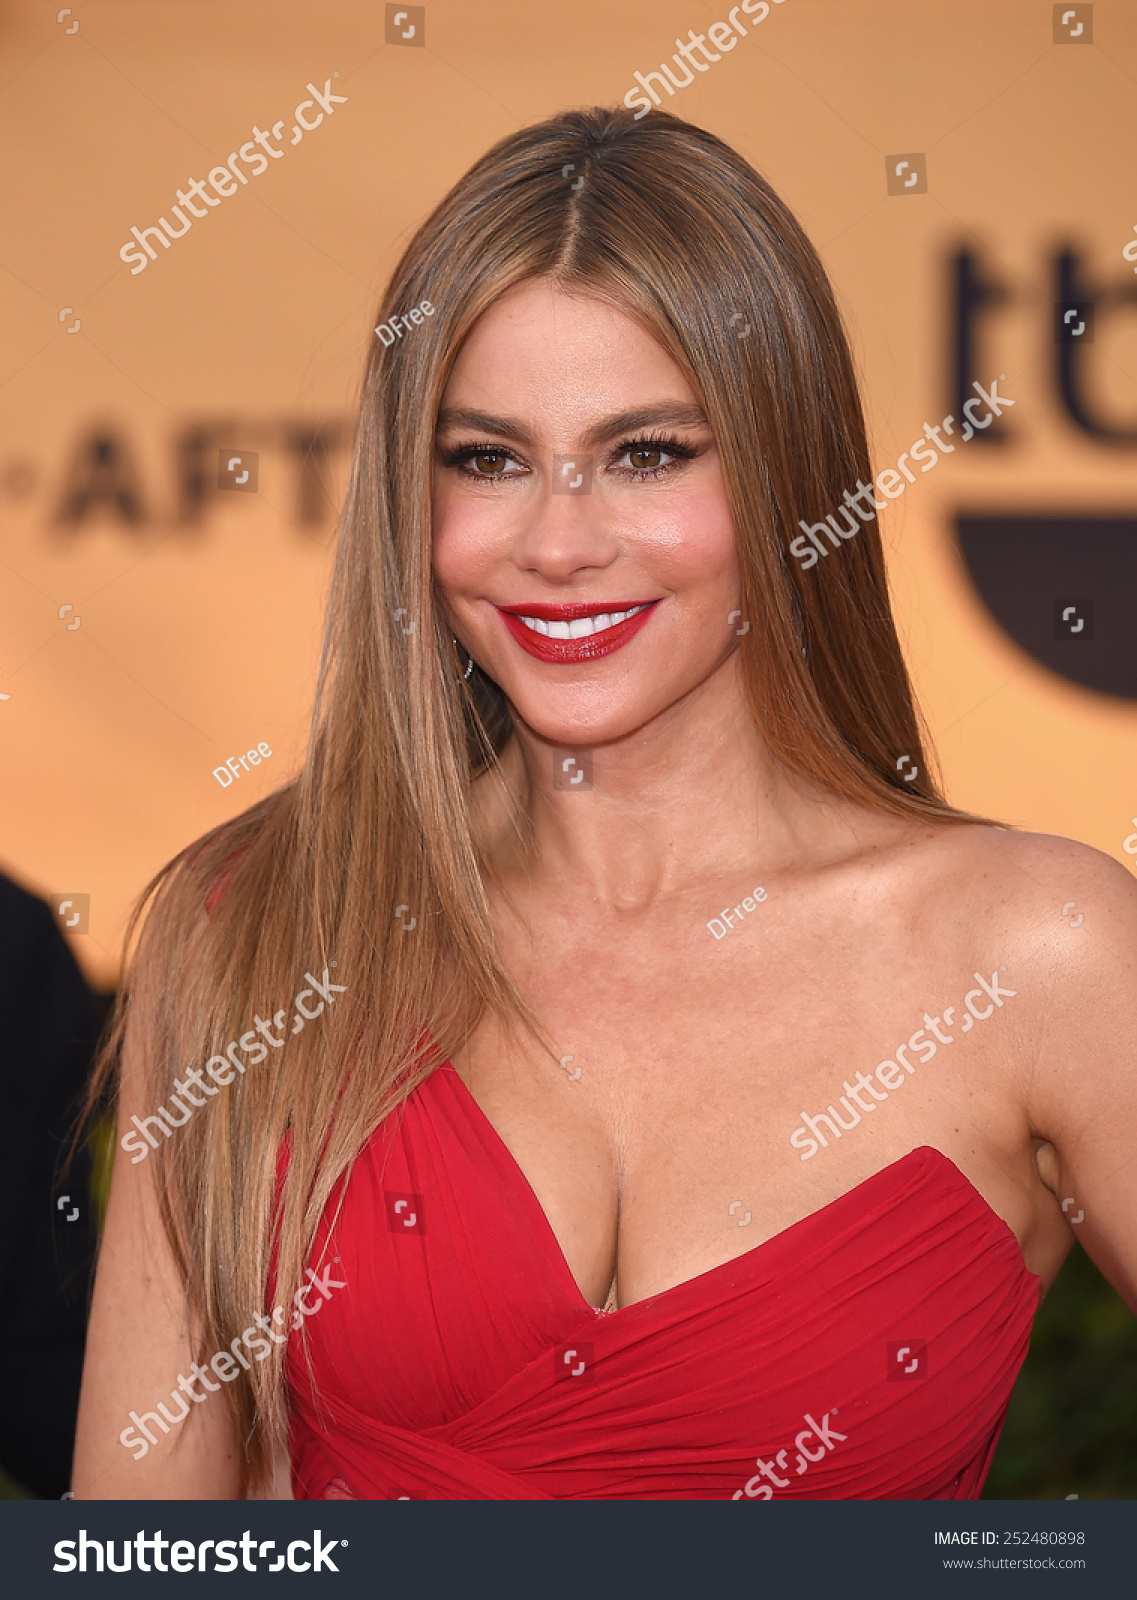 LOS ANGELES JAN 25 Sofia Vergara arrives to the 21st Annual Screen Actors Guild Awards on January 25 2015 in Los Angeles CA